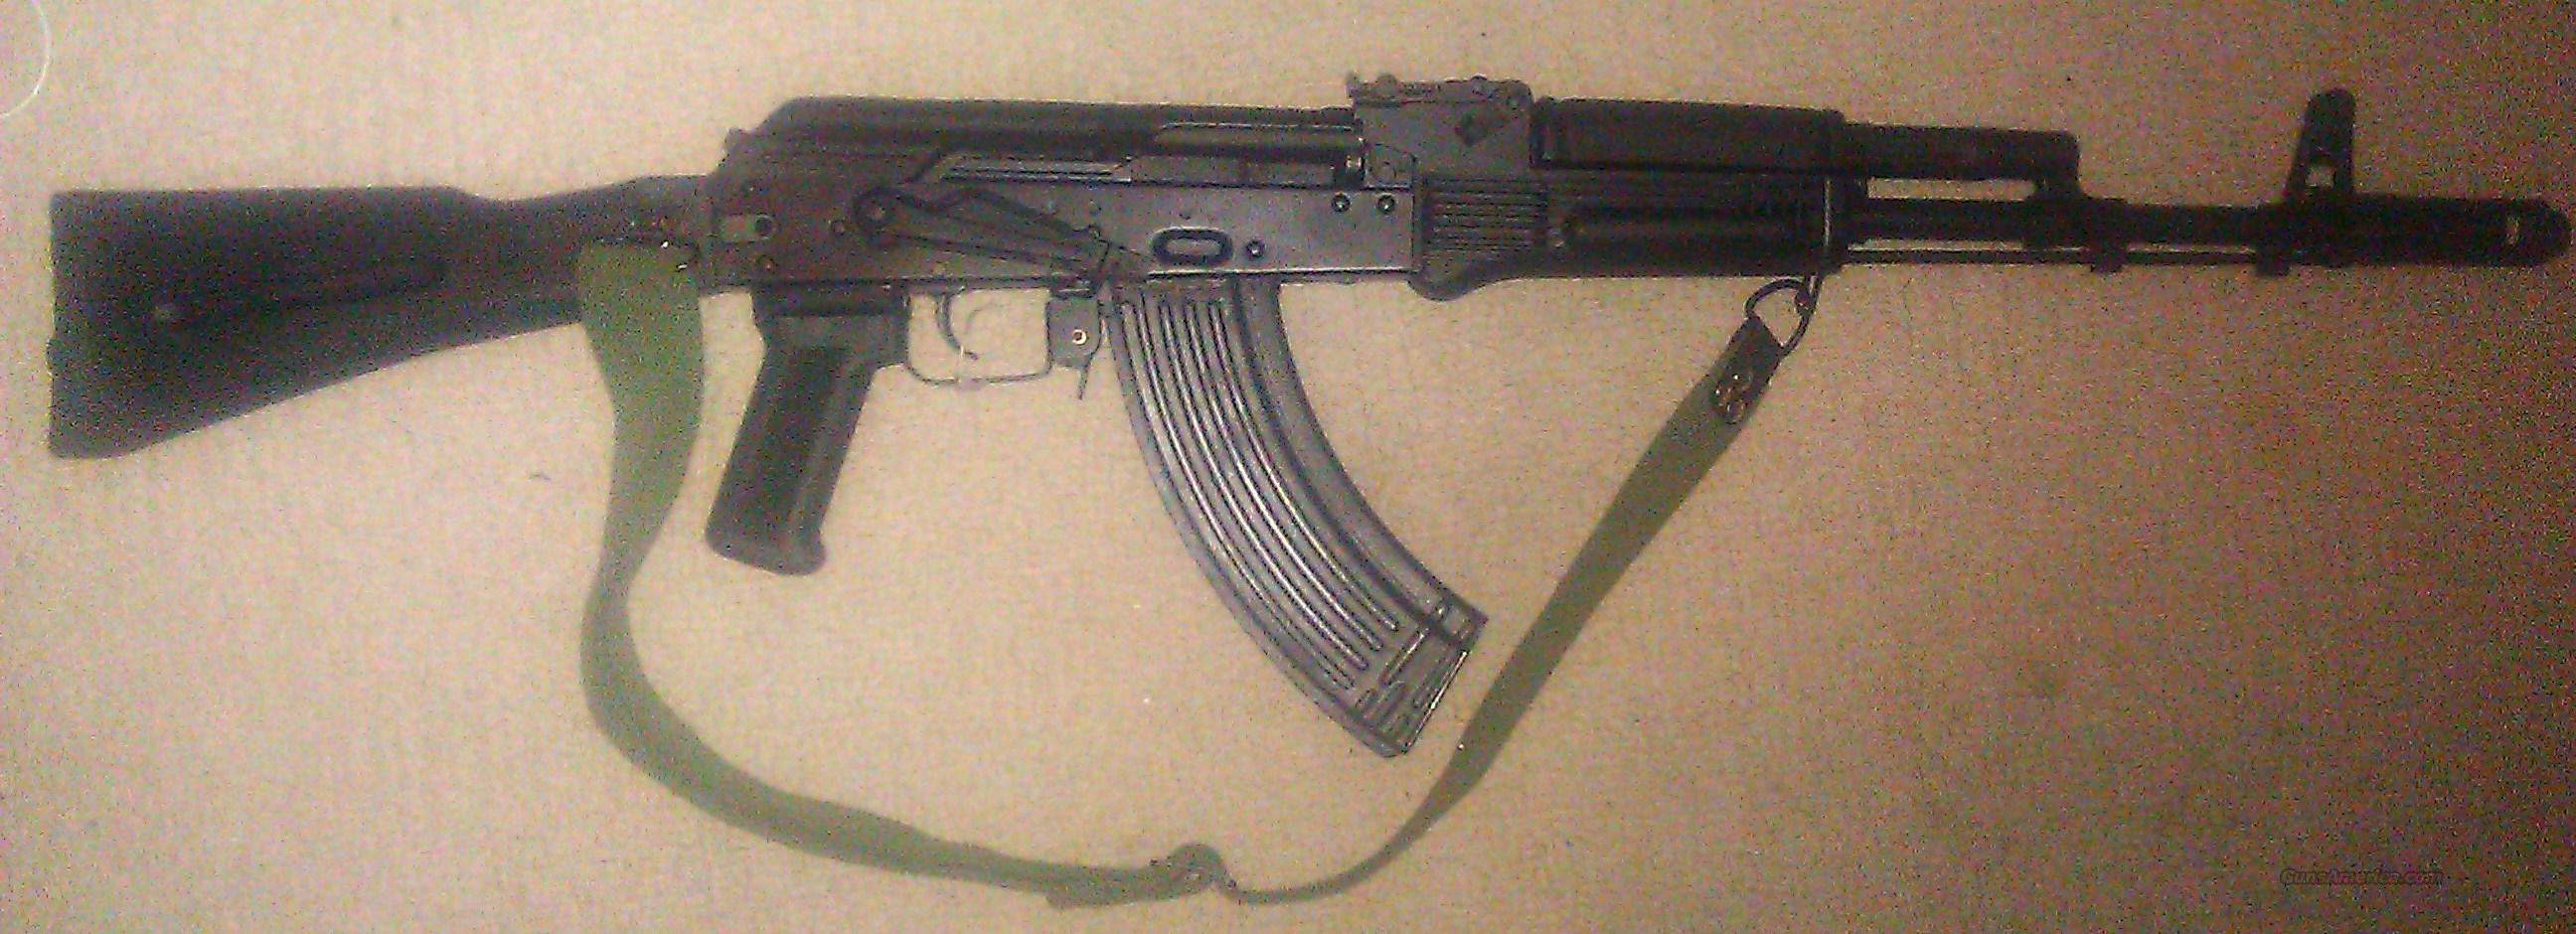 AK-47 Arsenal Inc. SLR-107FR - 7.62x39mm - Unfired / New Condition AK47  Guns > Rifles > AK-47 Rifles (and copies) > Folding Stock